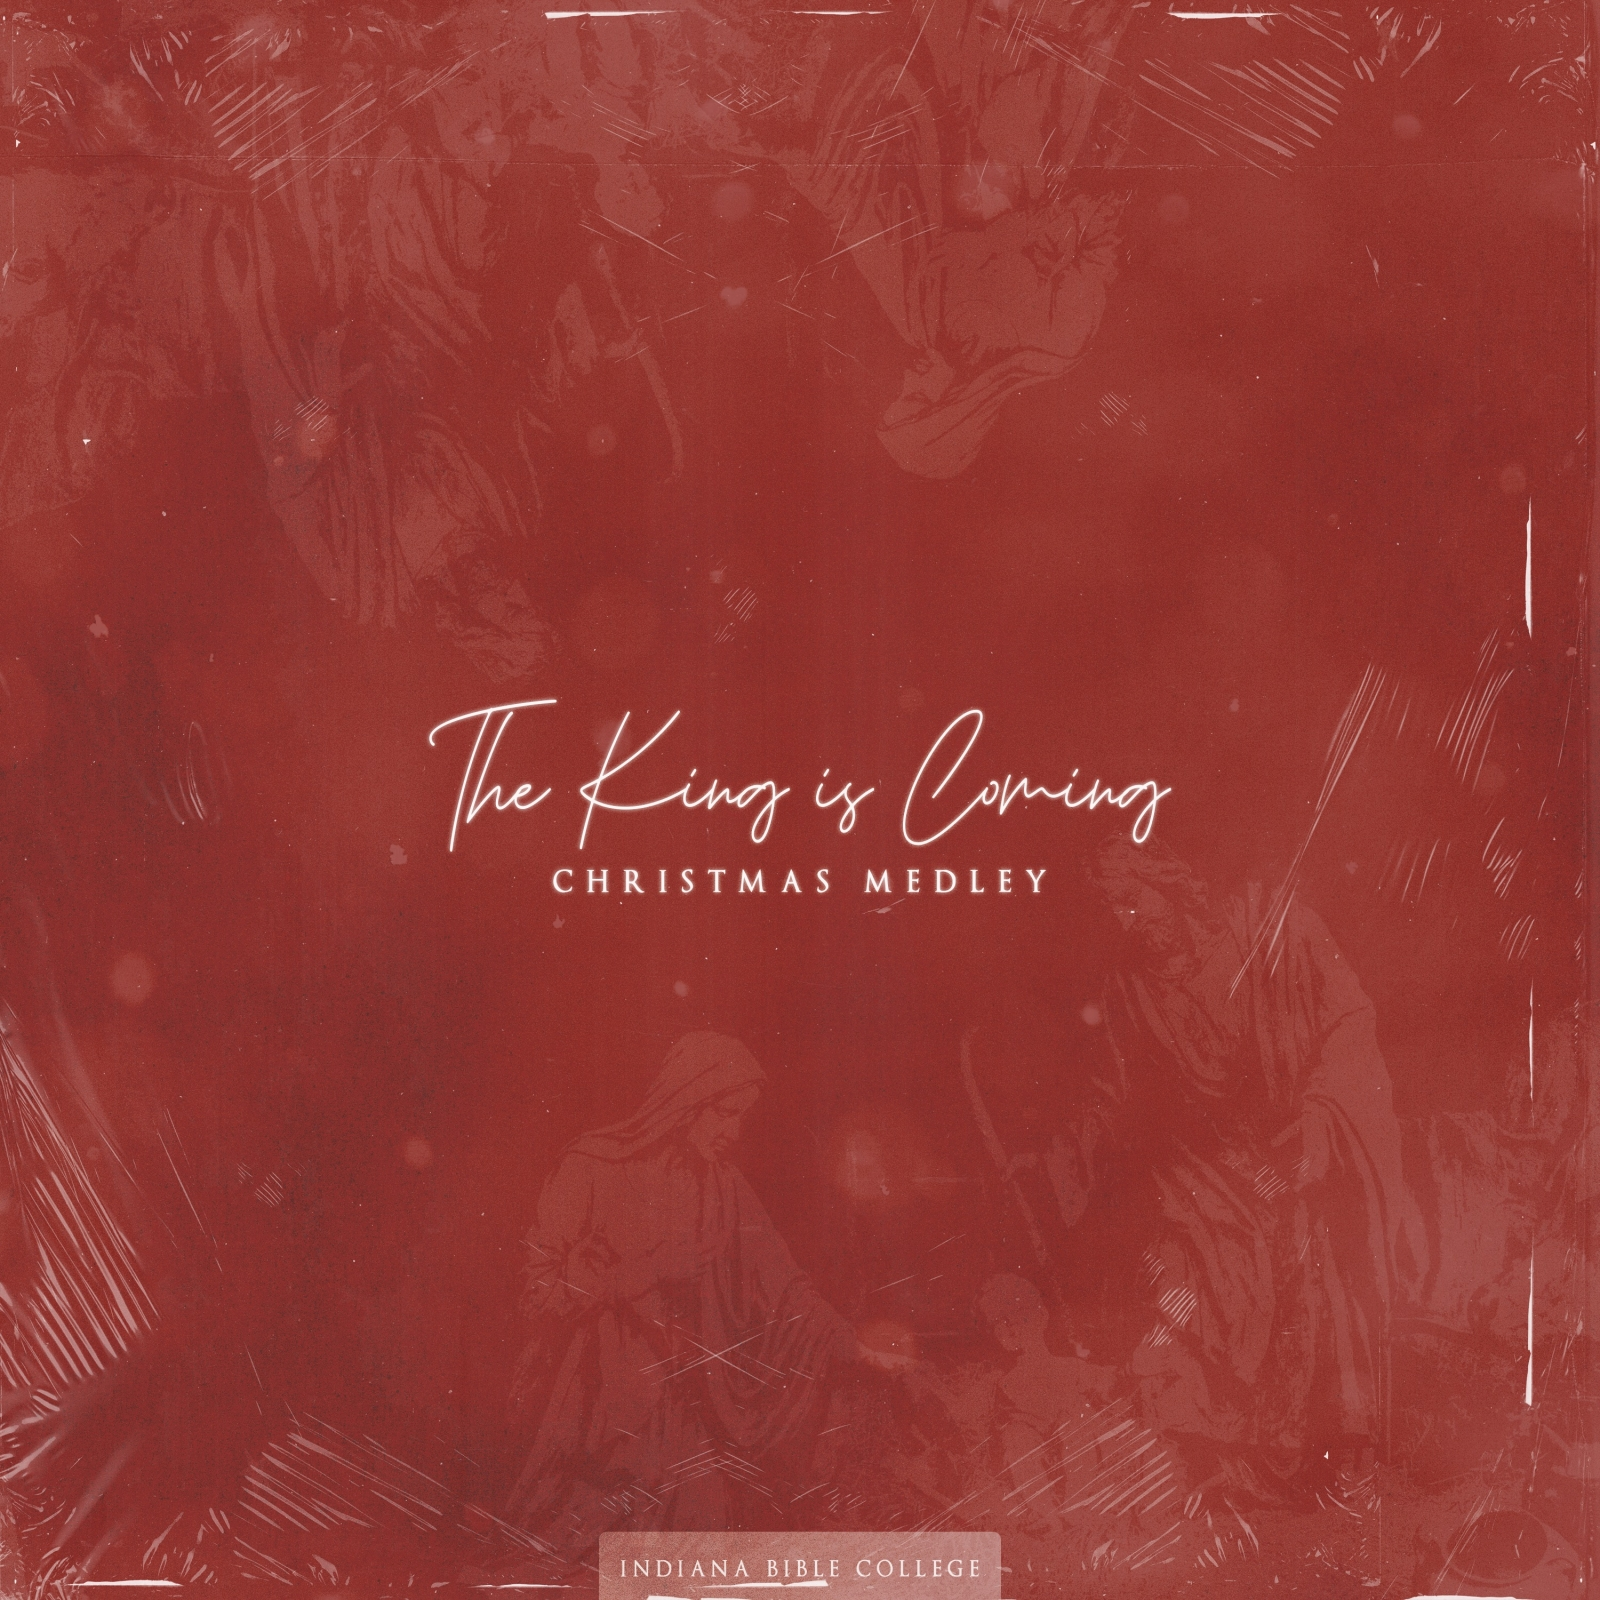 The King is Coming (Single)